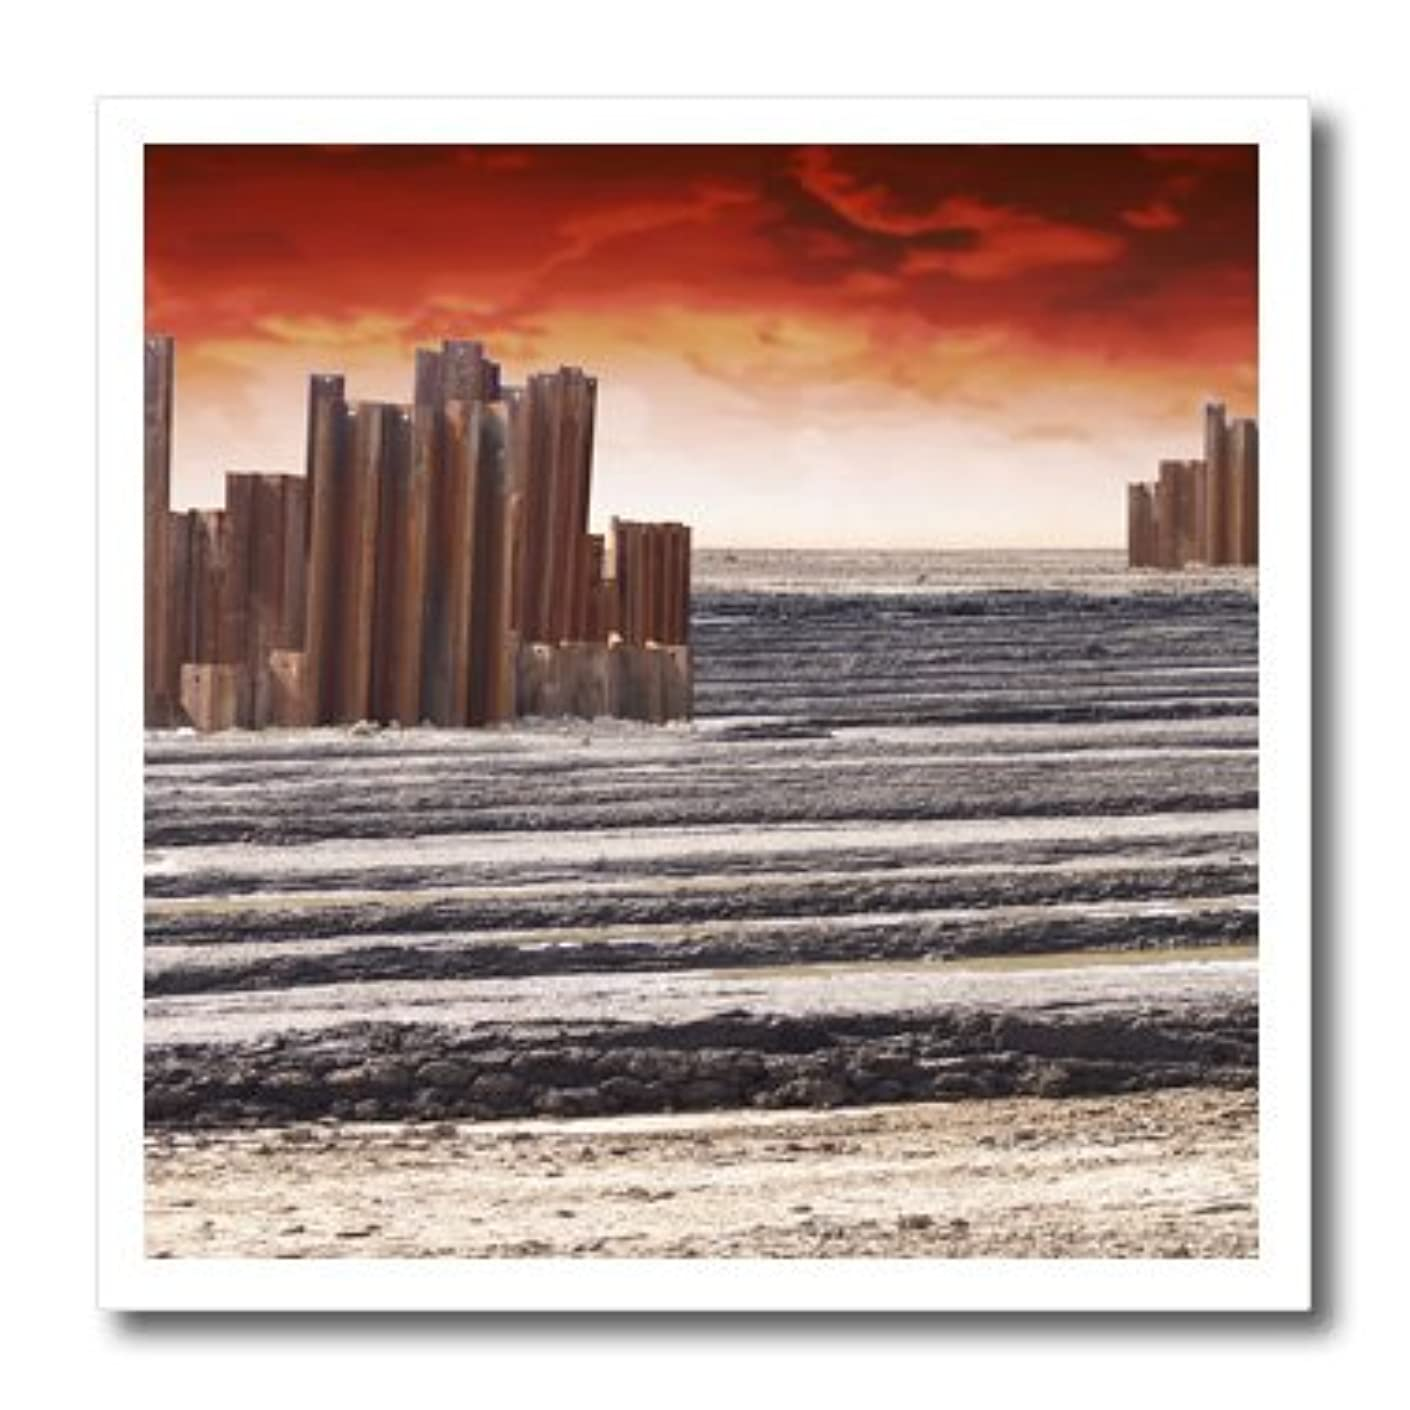 3dRose ht_19934_3 Down Town Rusted Steel Remnants of an Urb an Architectural Structure Iron on Heat Transfer for White Material, 10 by 10-Inch